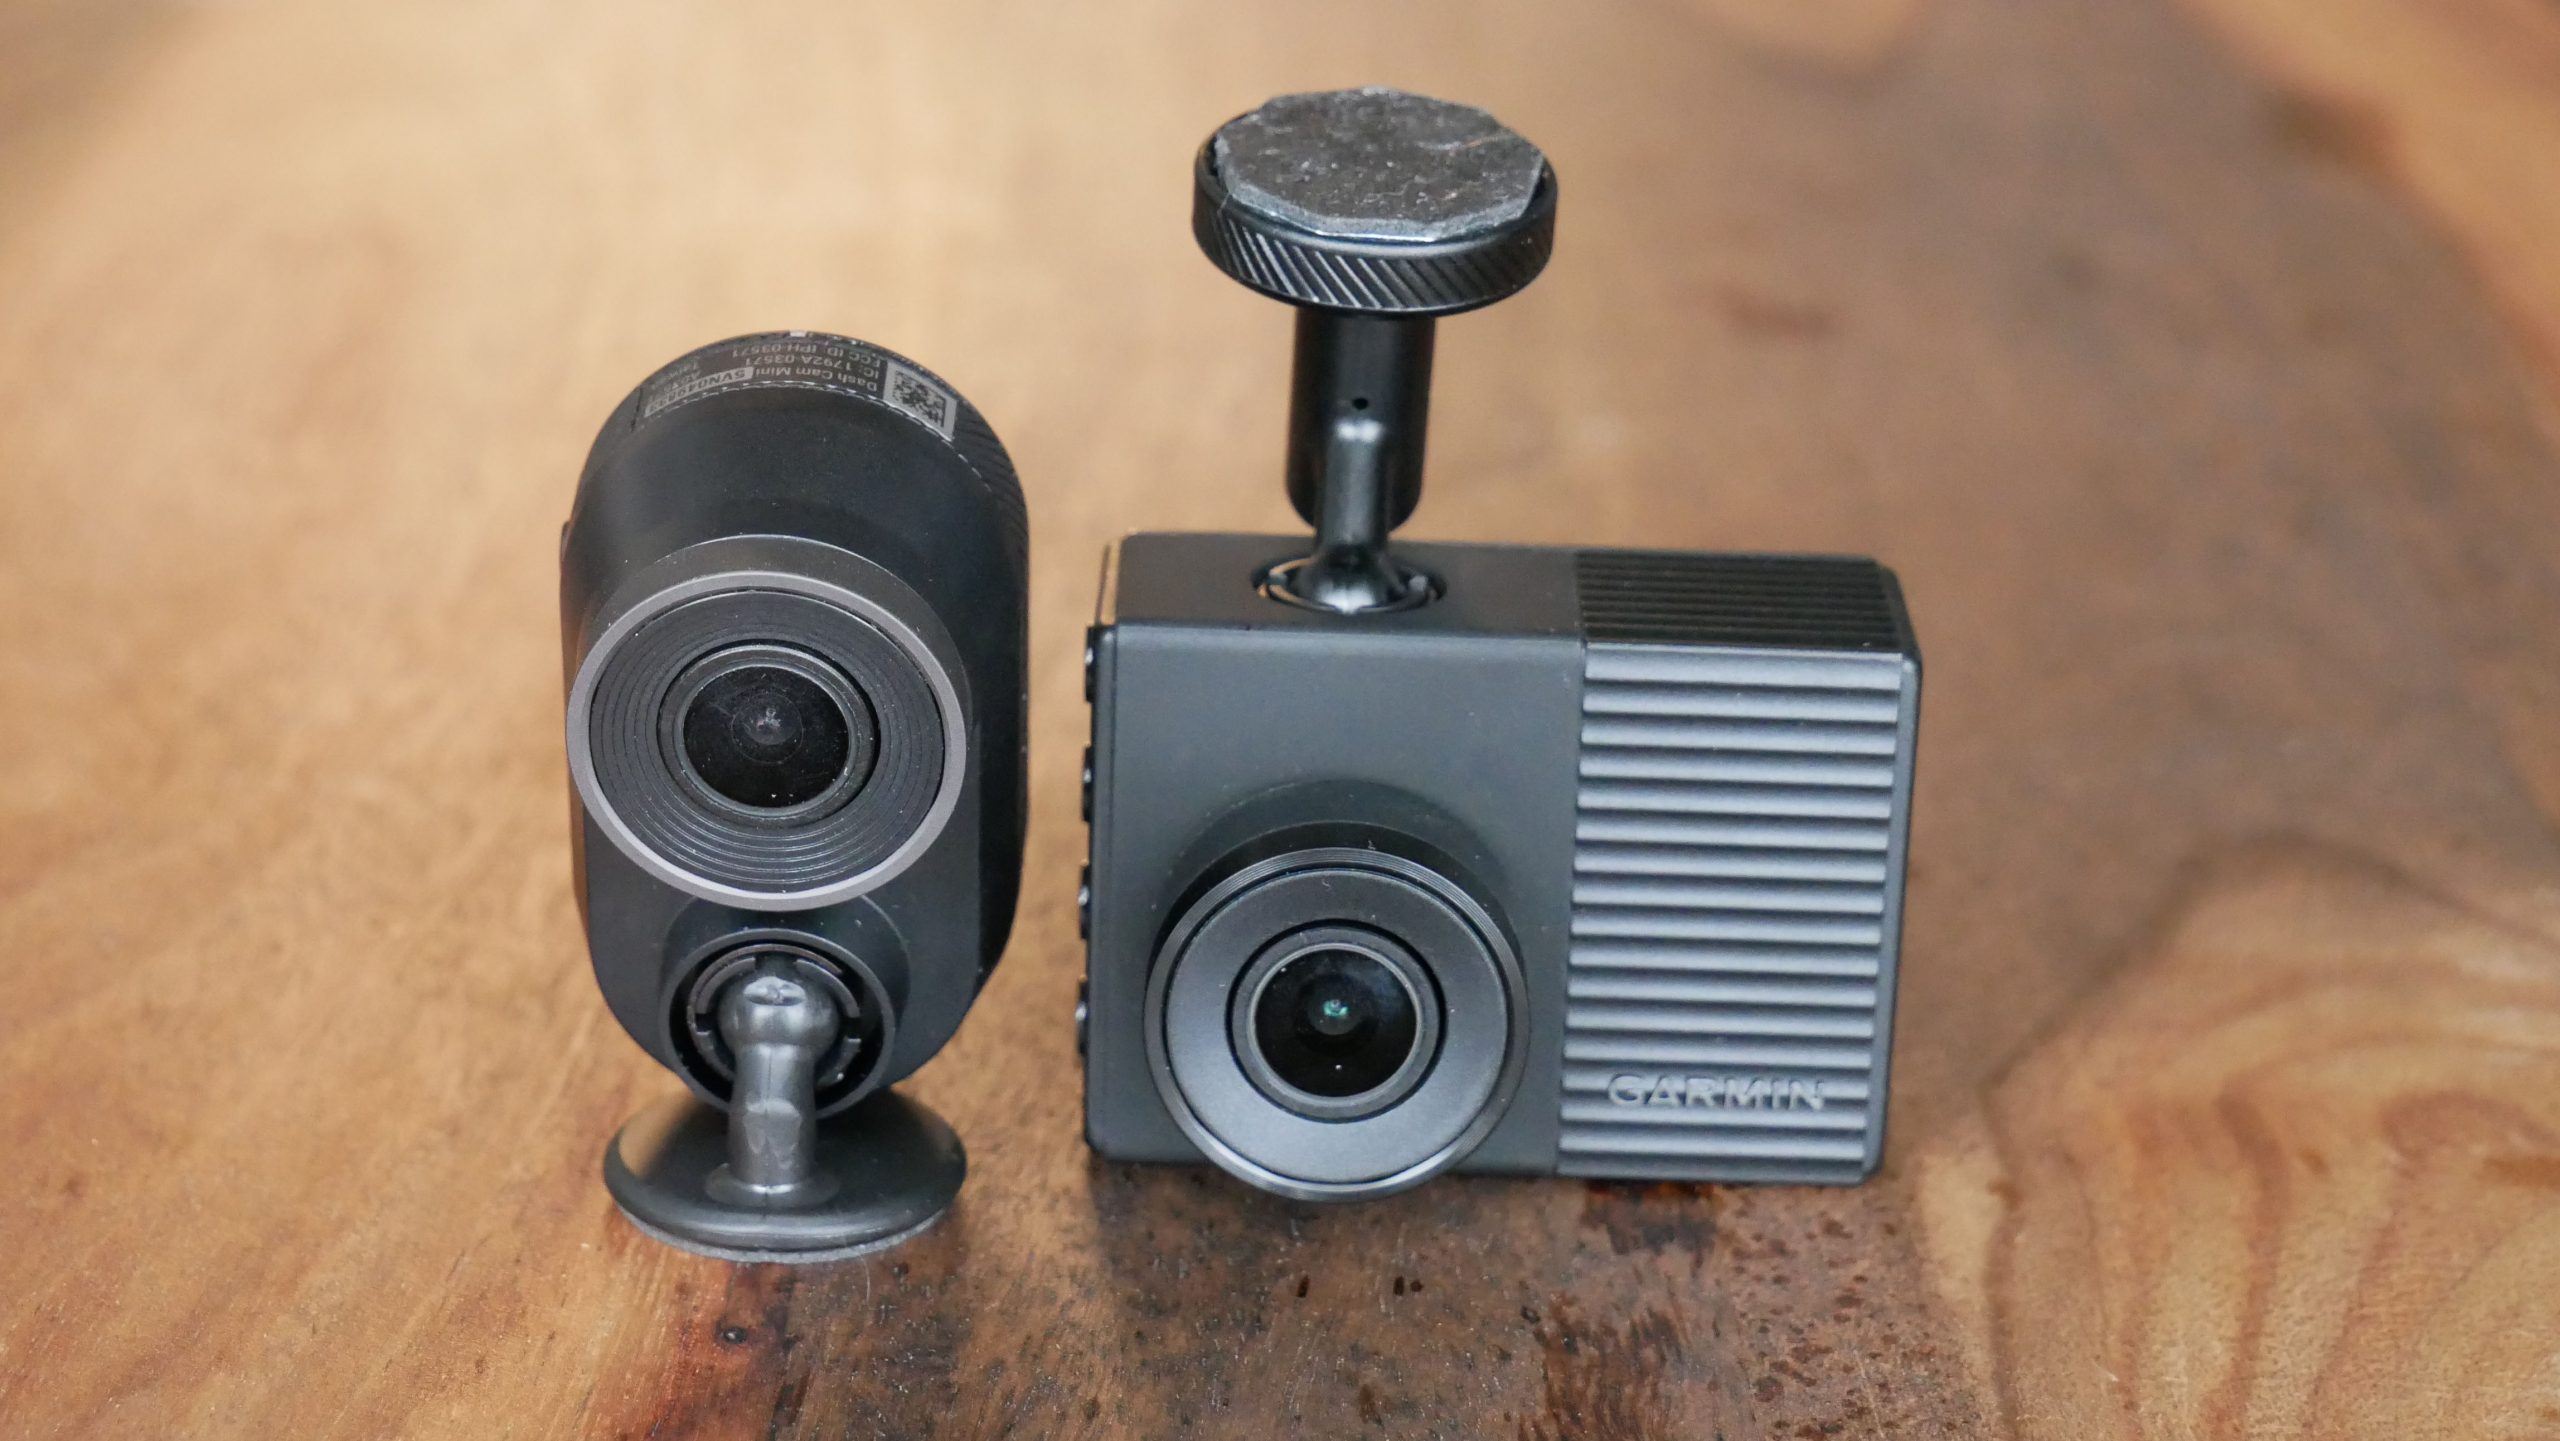 Image of Garmin Mini Dascham with another Dashcam from Garmin